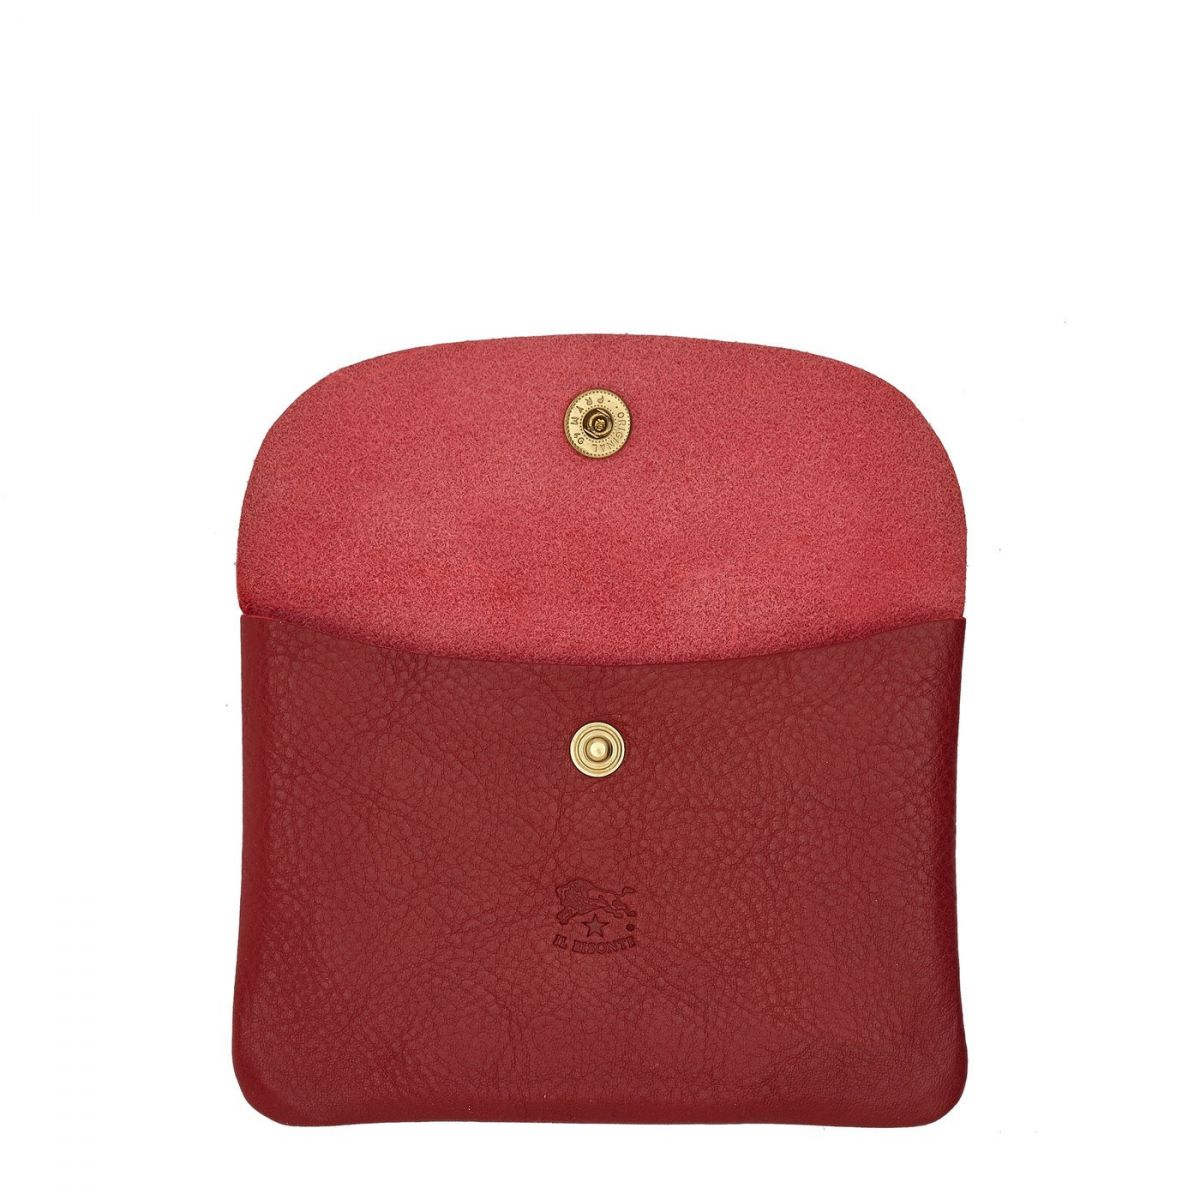 Case  in Cowhide Double Leather SCA008 color Red | Details